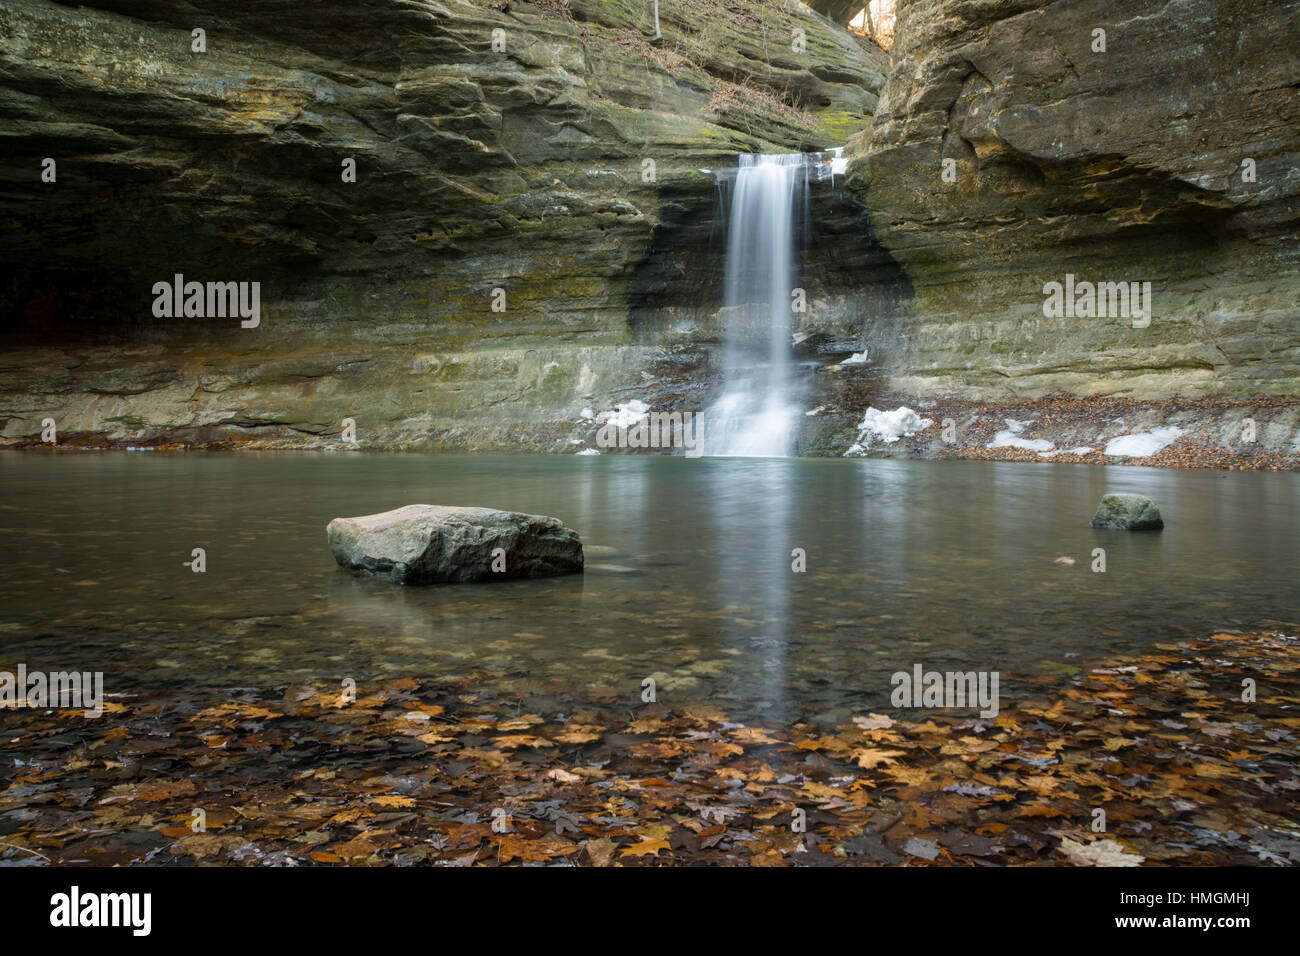 Water cascade in the Lower Dells.  Matthiessen State Park, Illinois, U.S.A.. - Stock Image